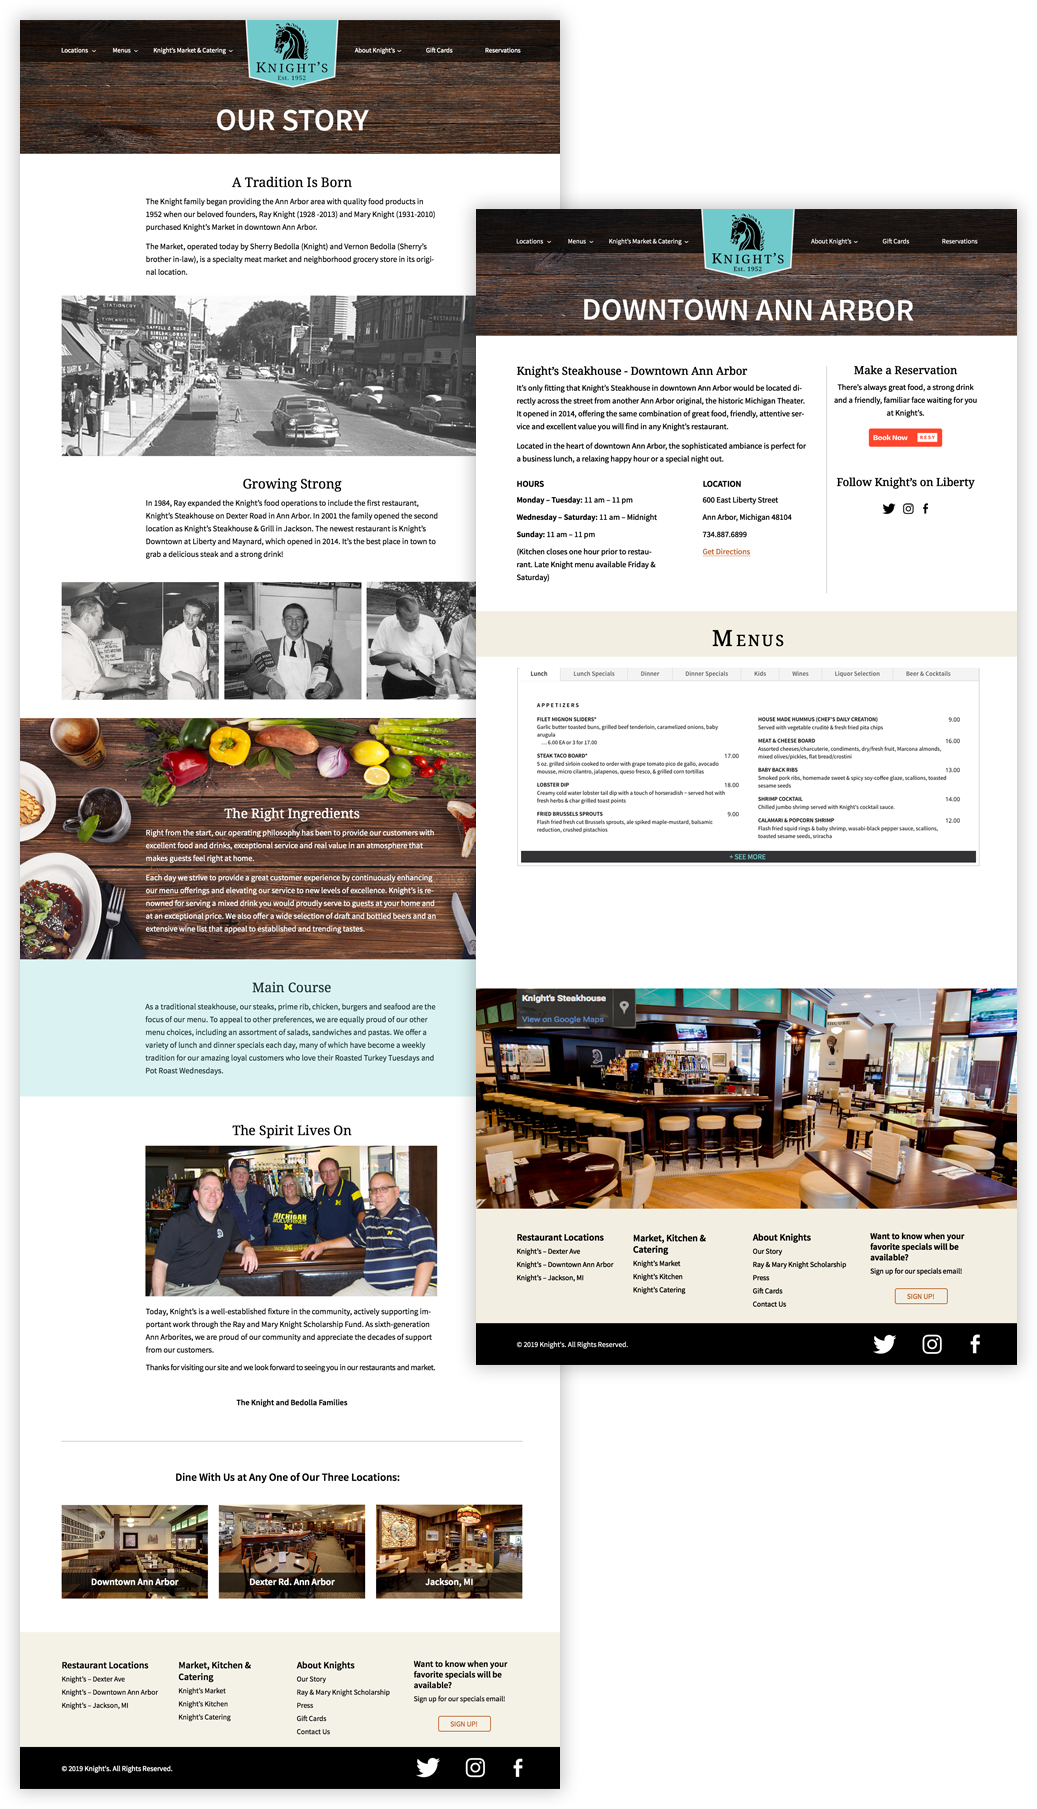 Knight's Restaurants Our Story Page